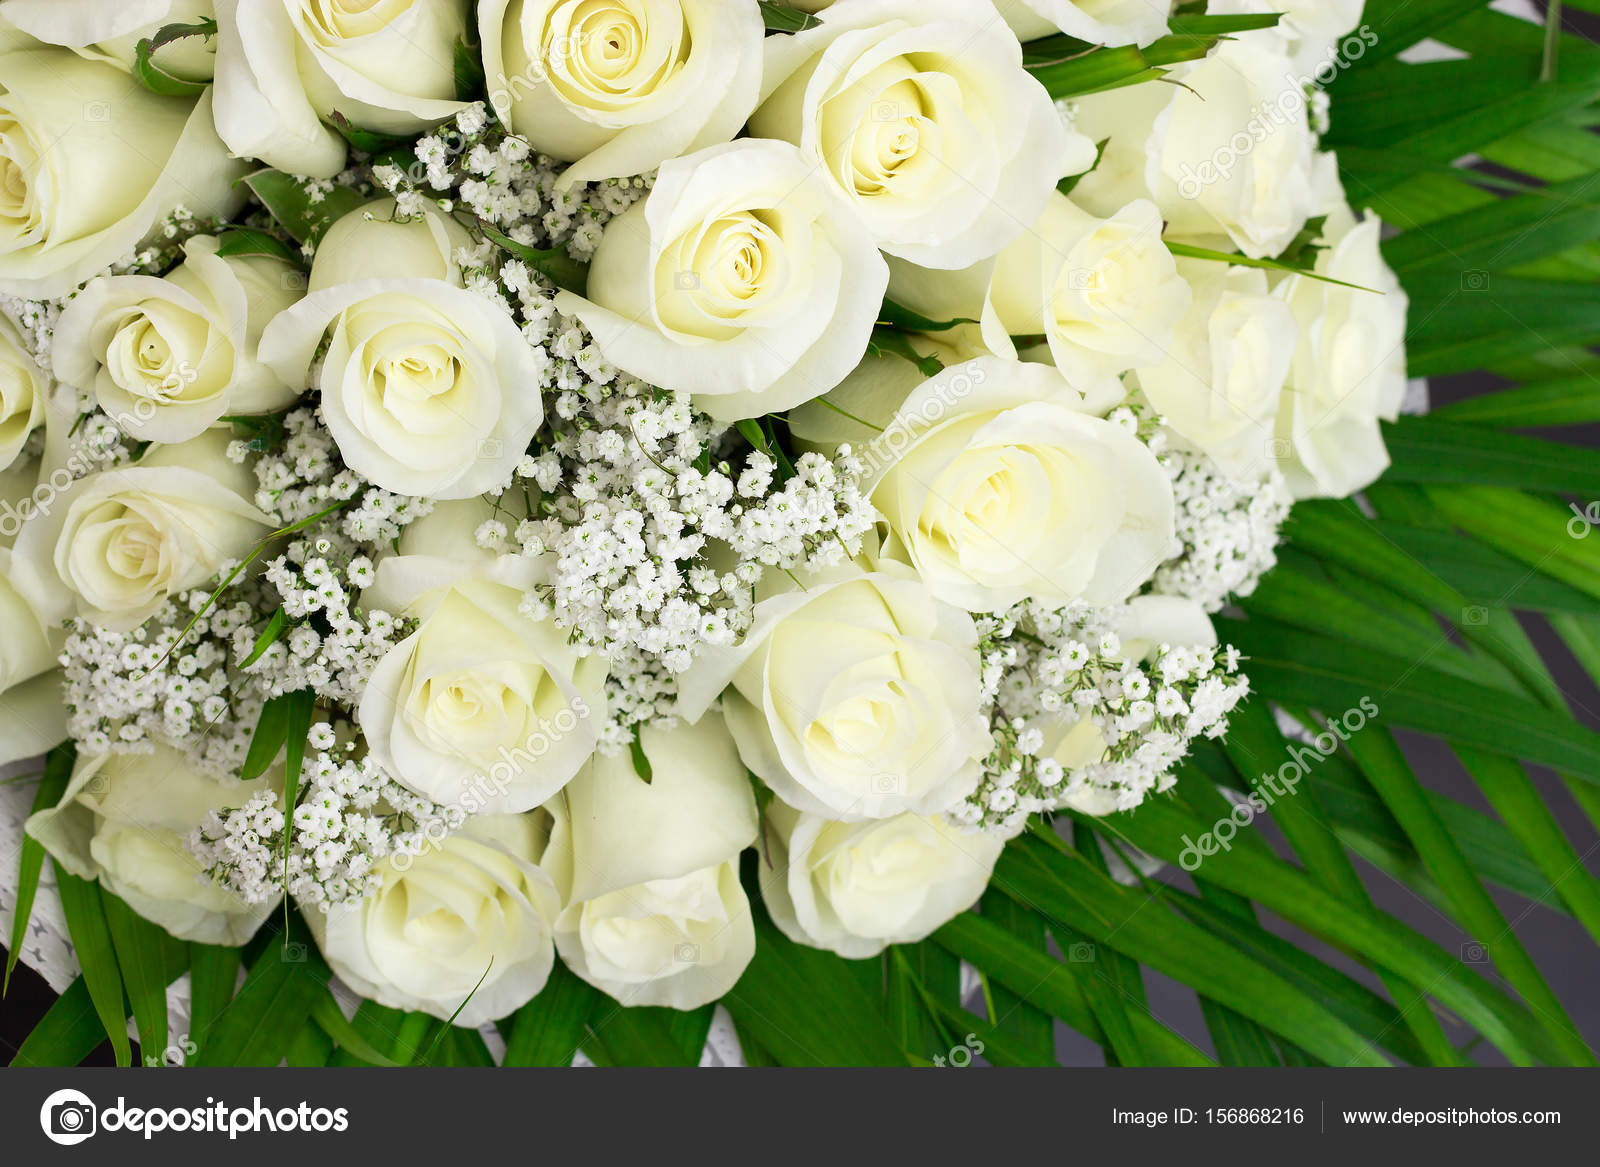 Elegant Bouquet Of Lots White Rose Stock Photo Alju 156868216